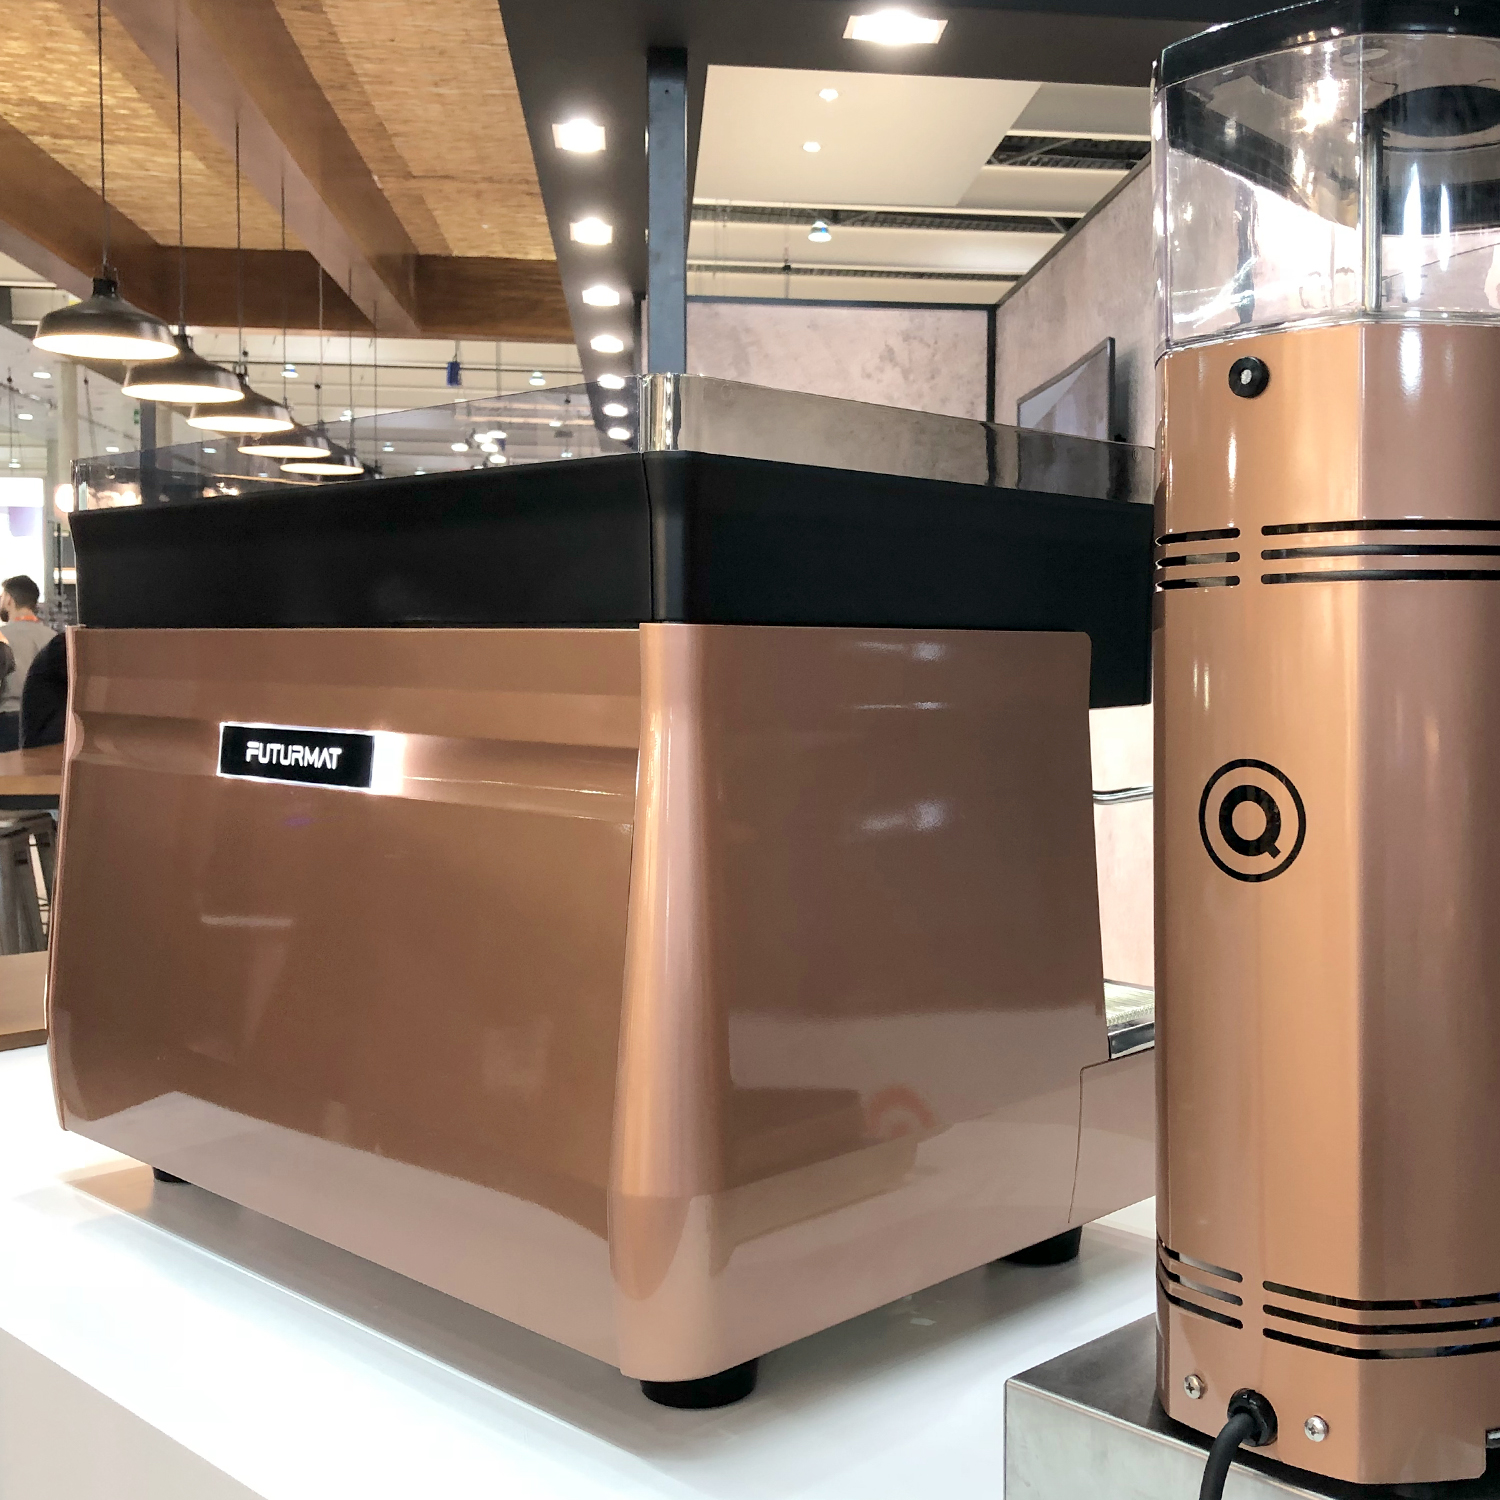 Quality Espresso Futurmat F3 was presented ad Hostelco 2018 with our design